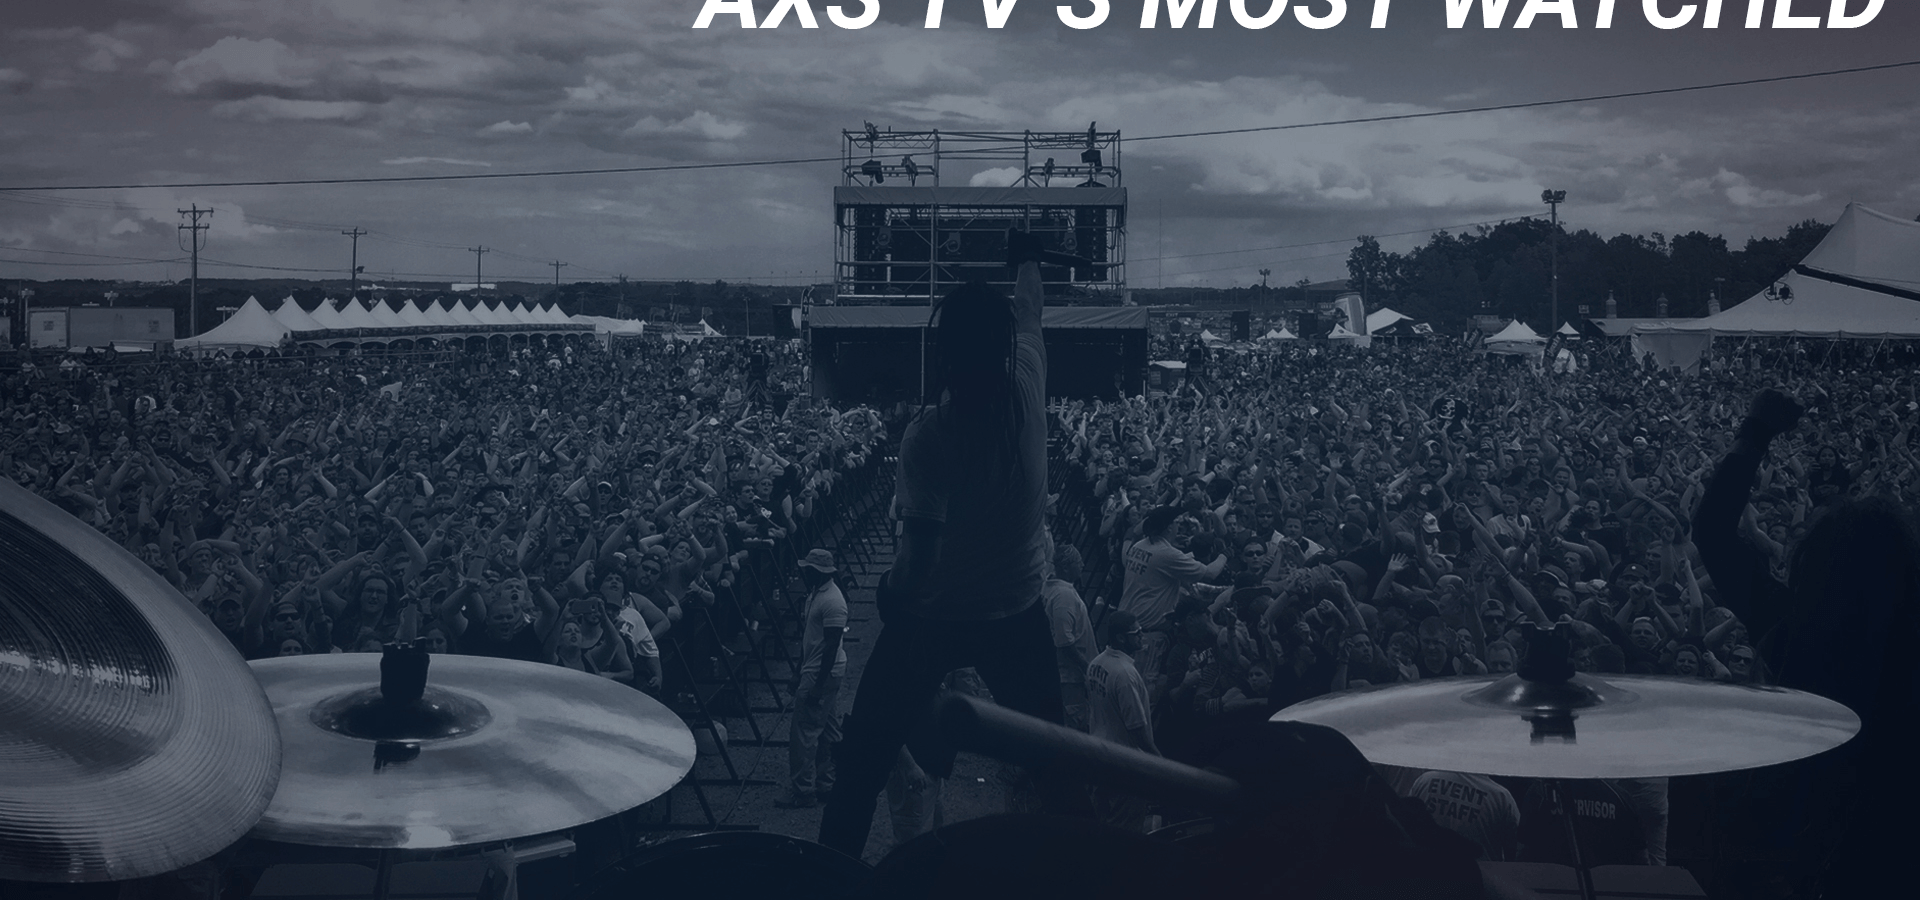 AXS TV's Most Watched